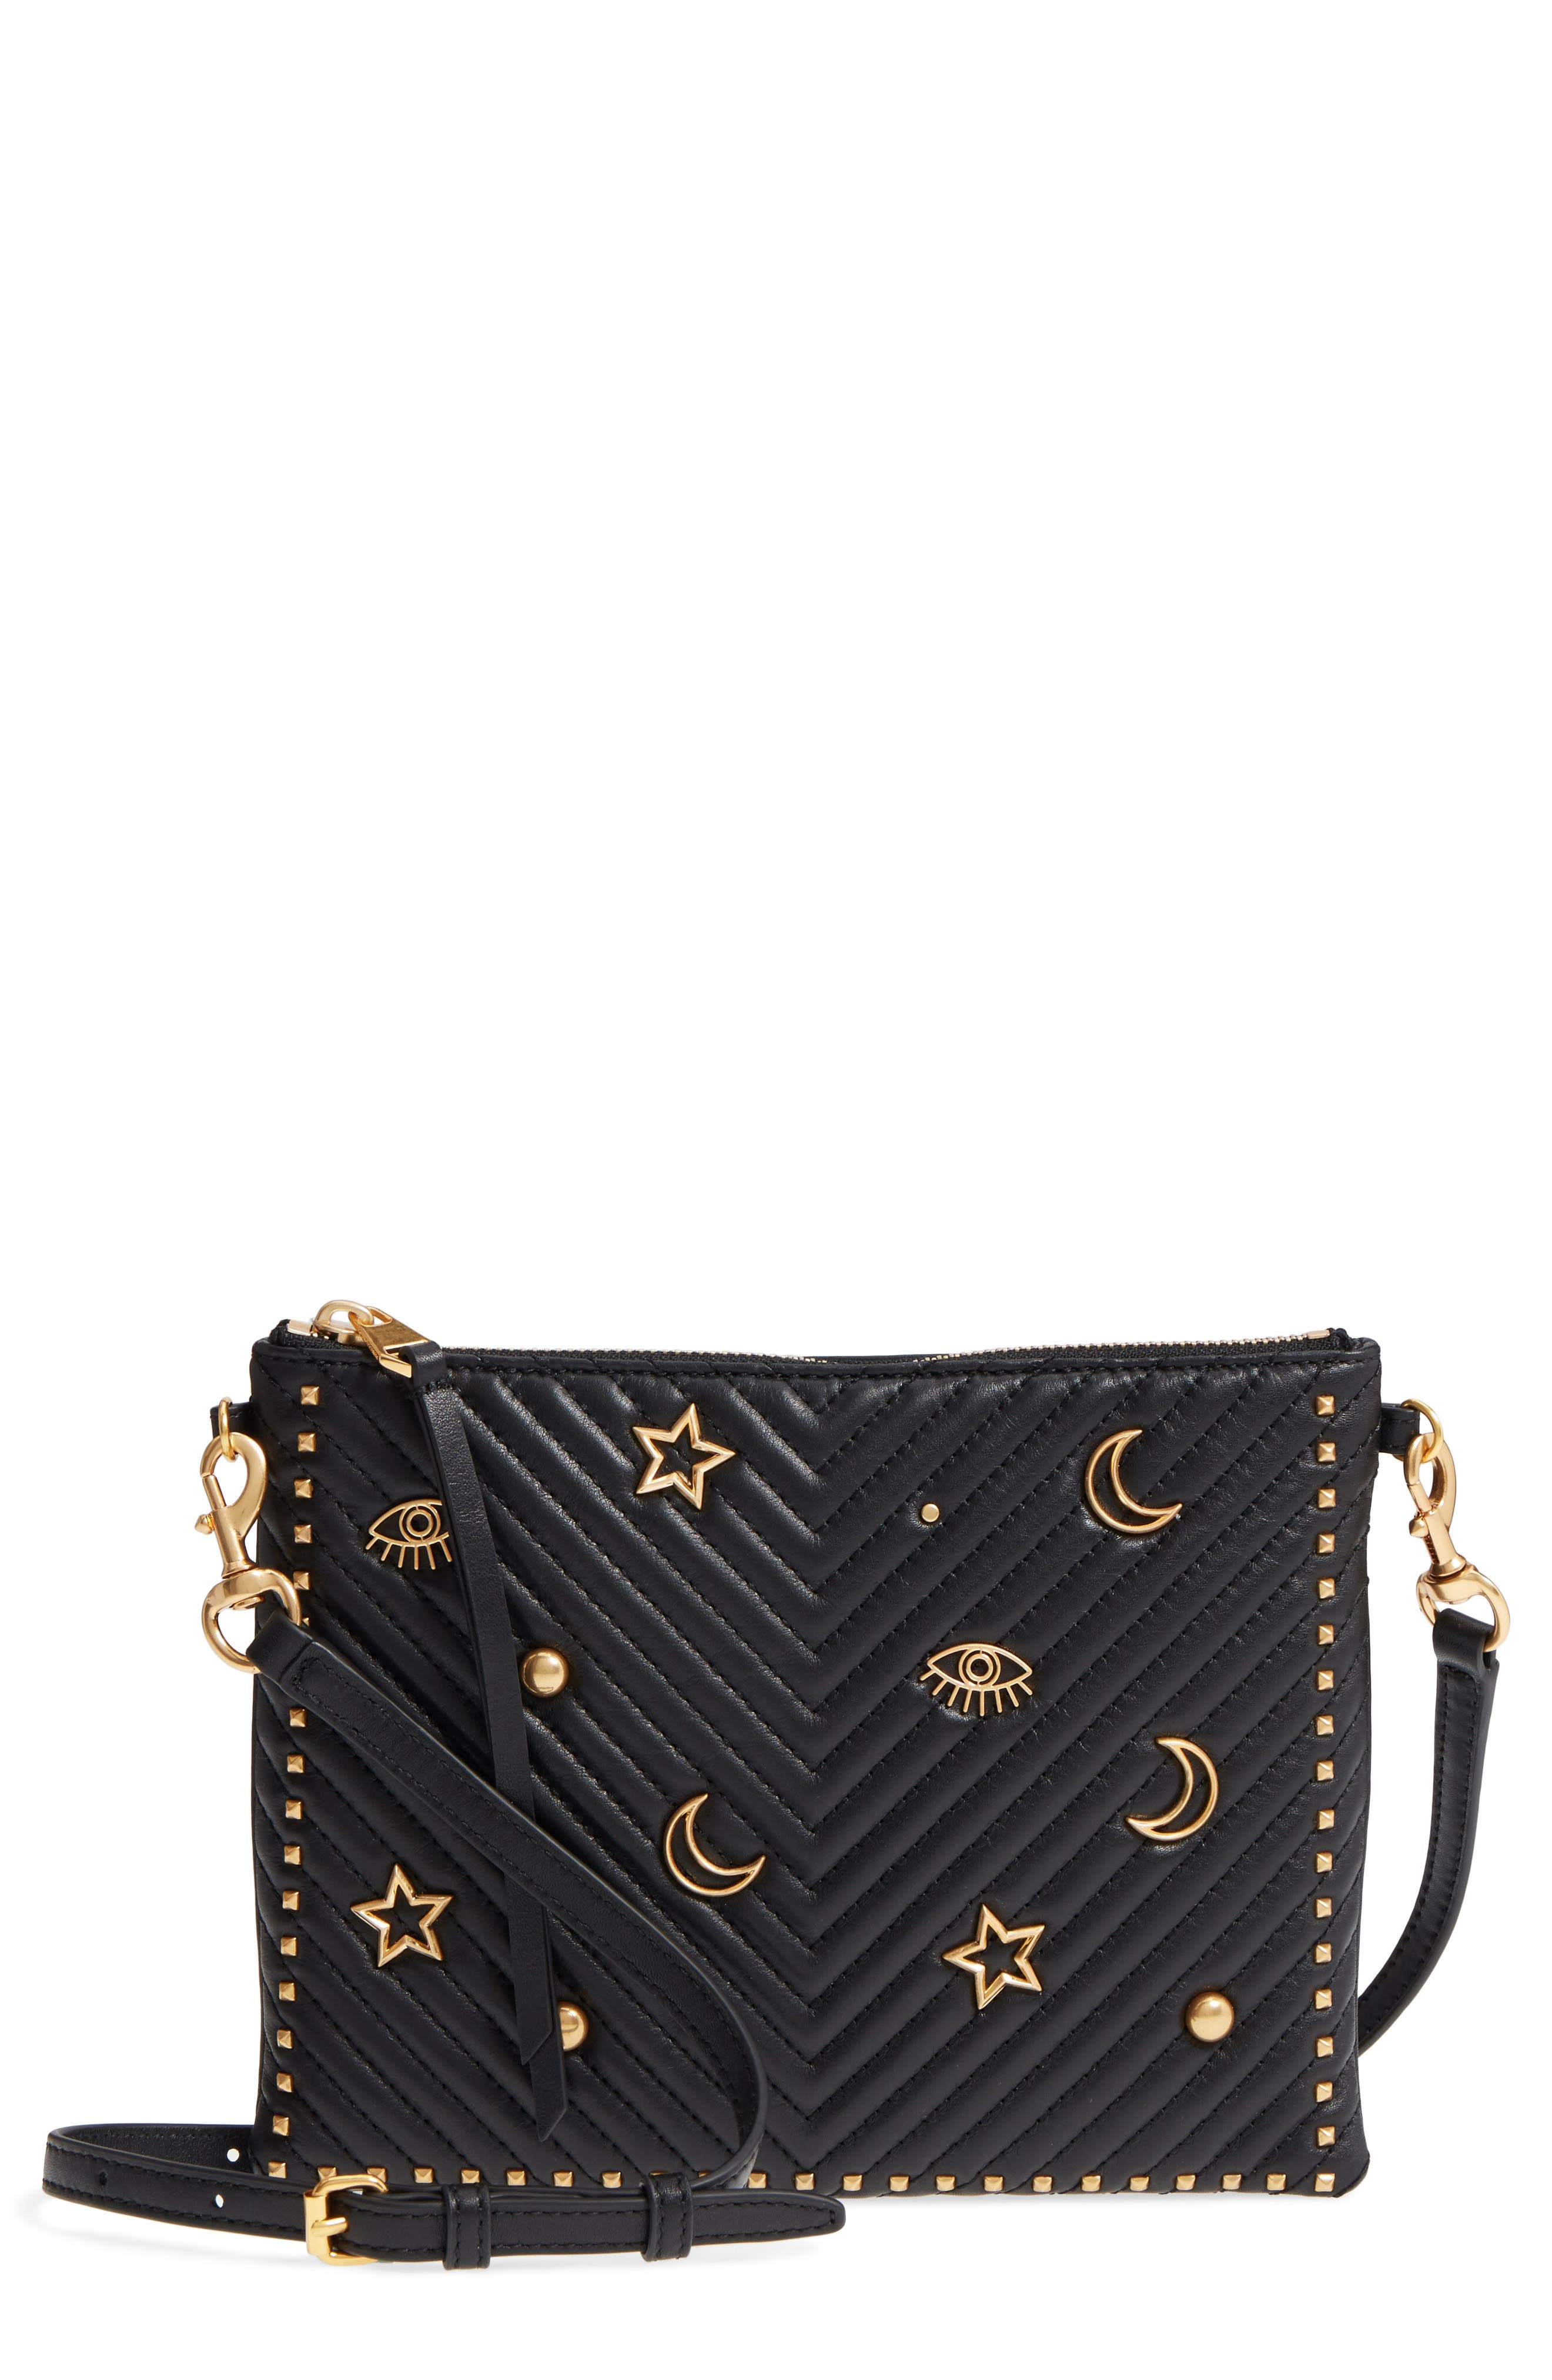 Jon Quilted Leather Crossbody Bag,                         Main,                         color, Black